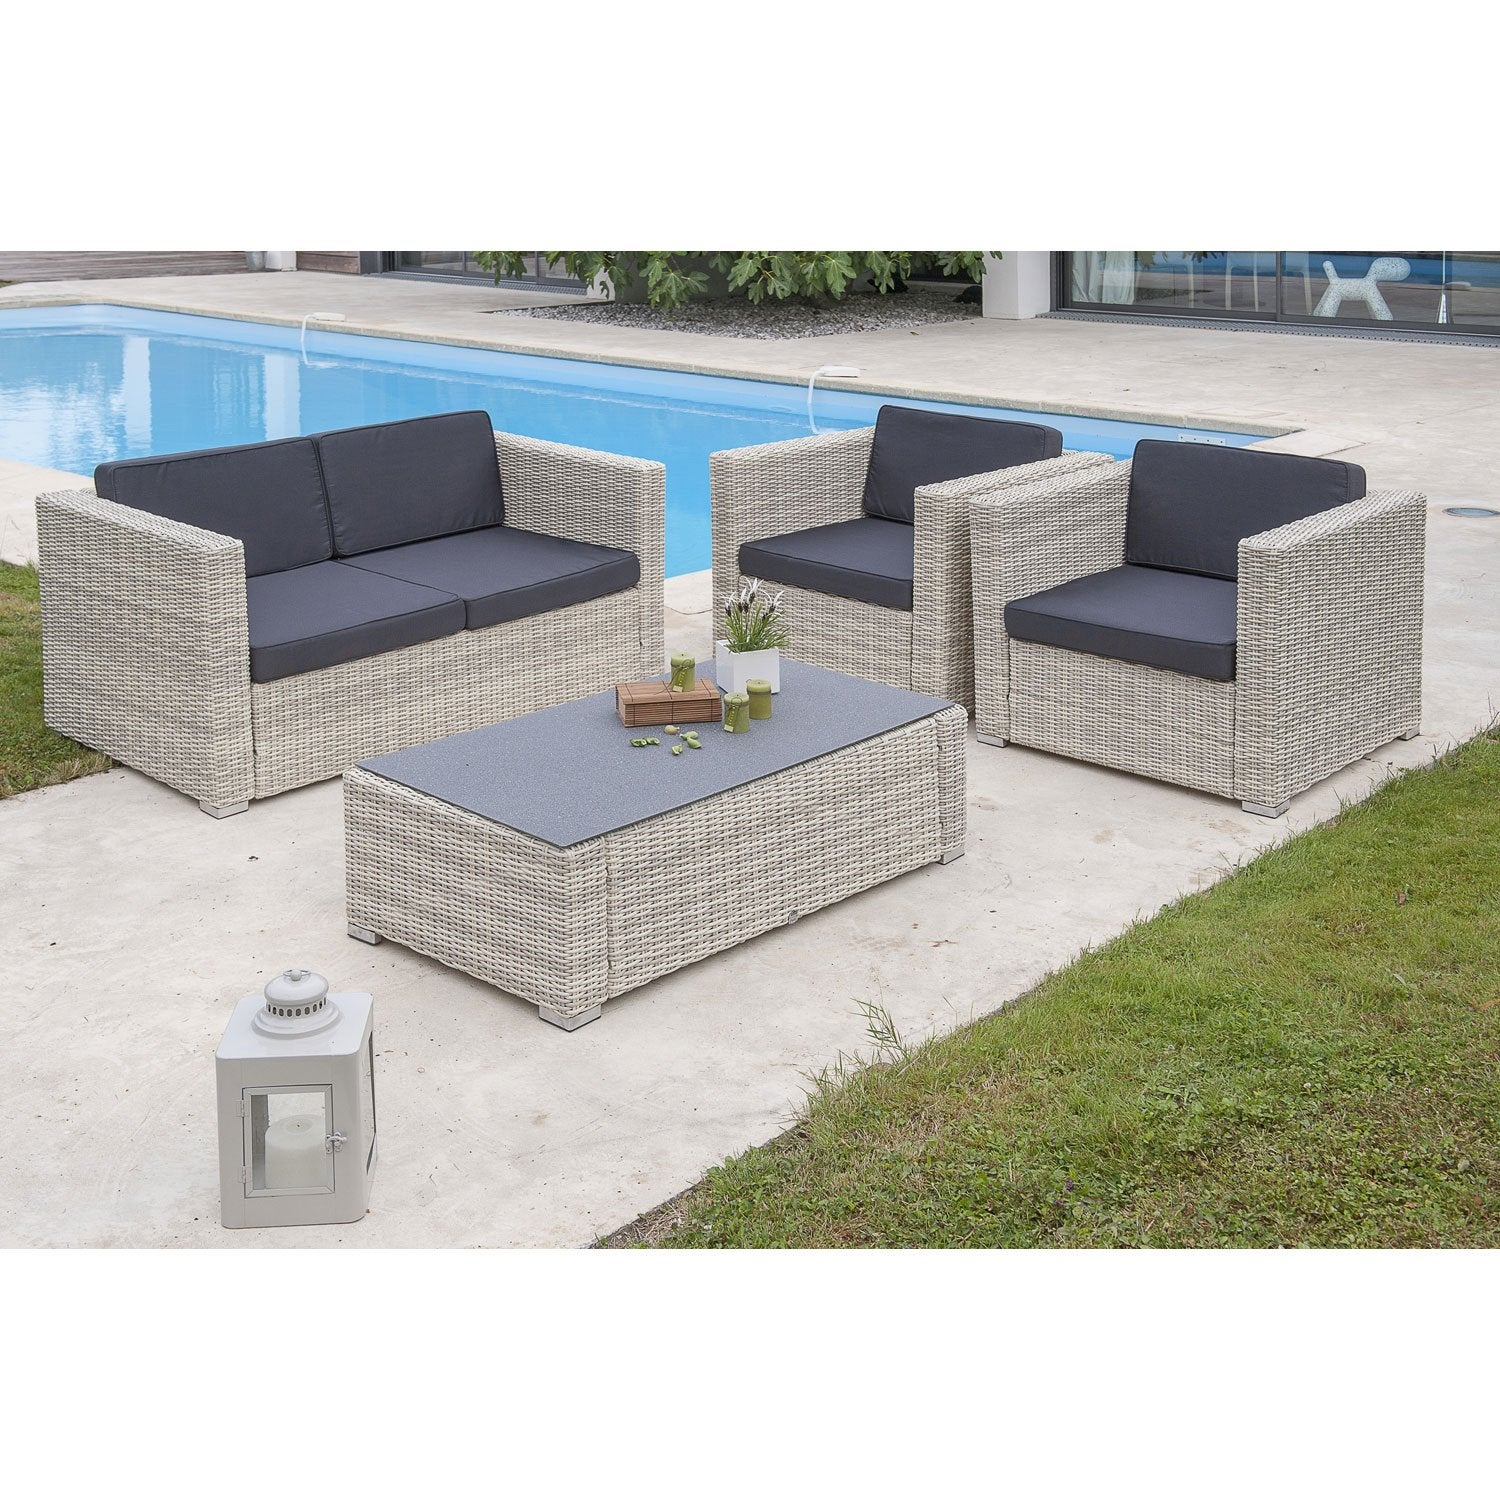 Salon bas de jardin oceane salon r sine tress e blanc table canap 2 fauteuil - Leroy merlin salon jardin ...